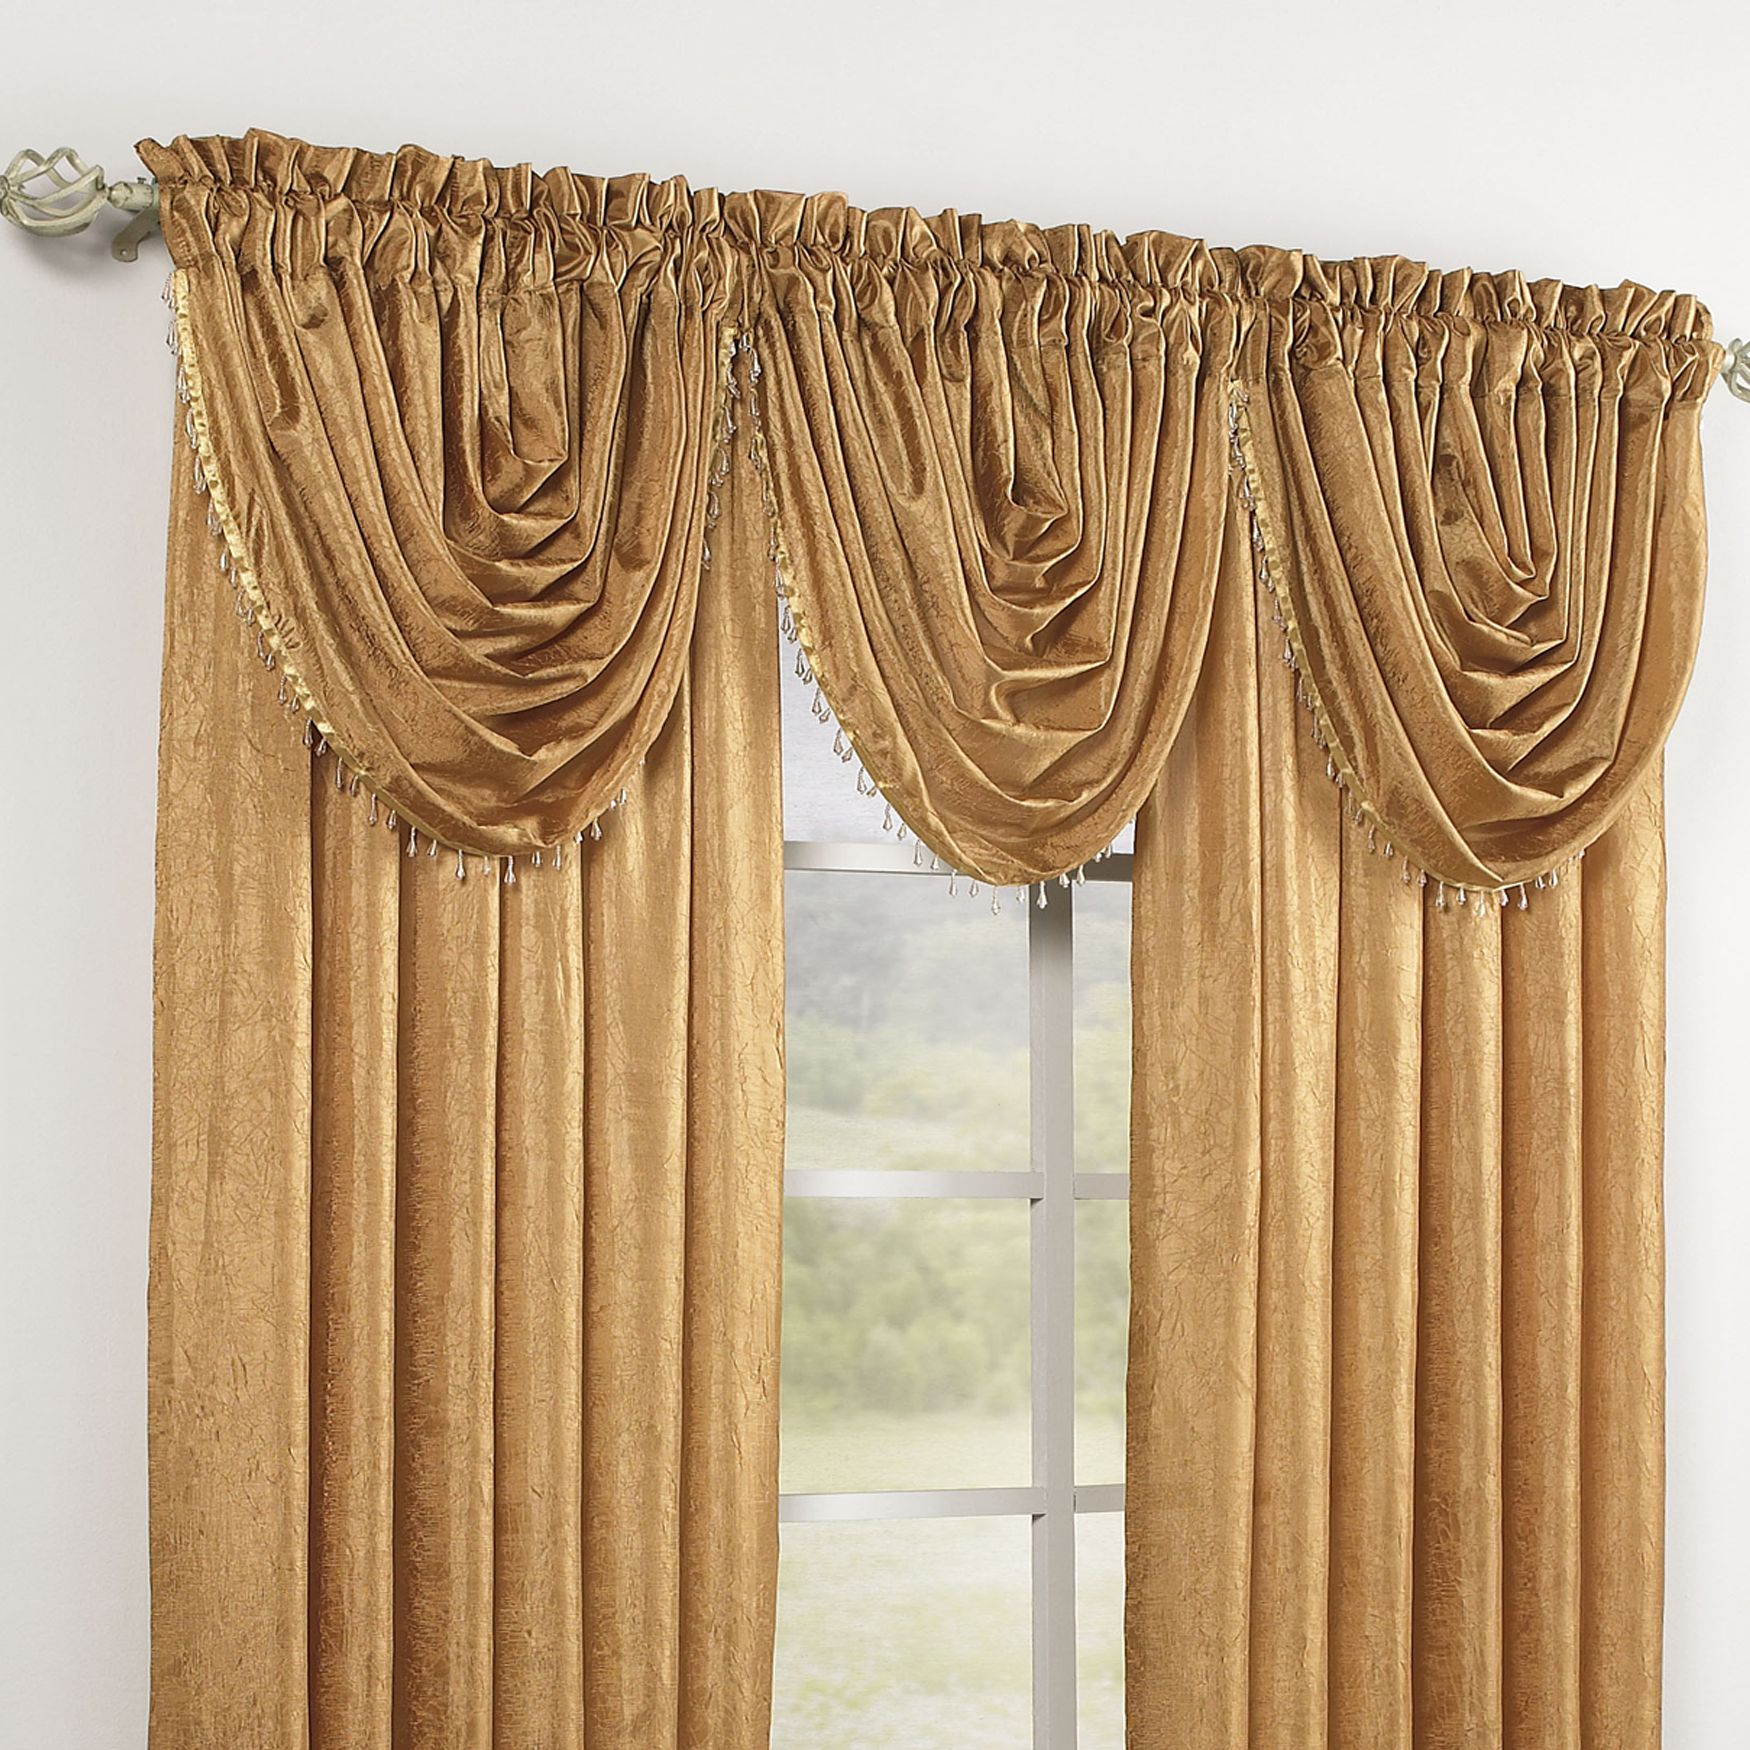 Crushed Taffeta Beaded Waterfall Valance Rod Pocket Panel Curtains Drapes Brylanehome